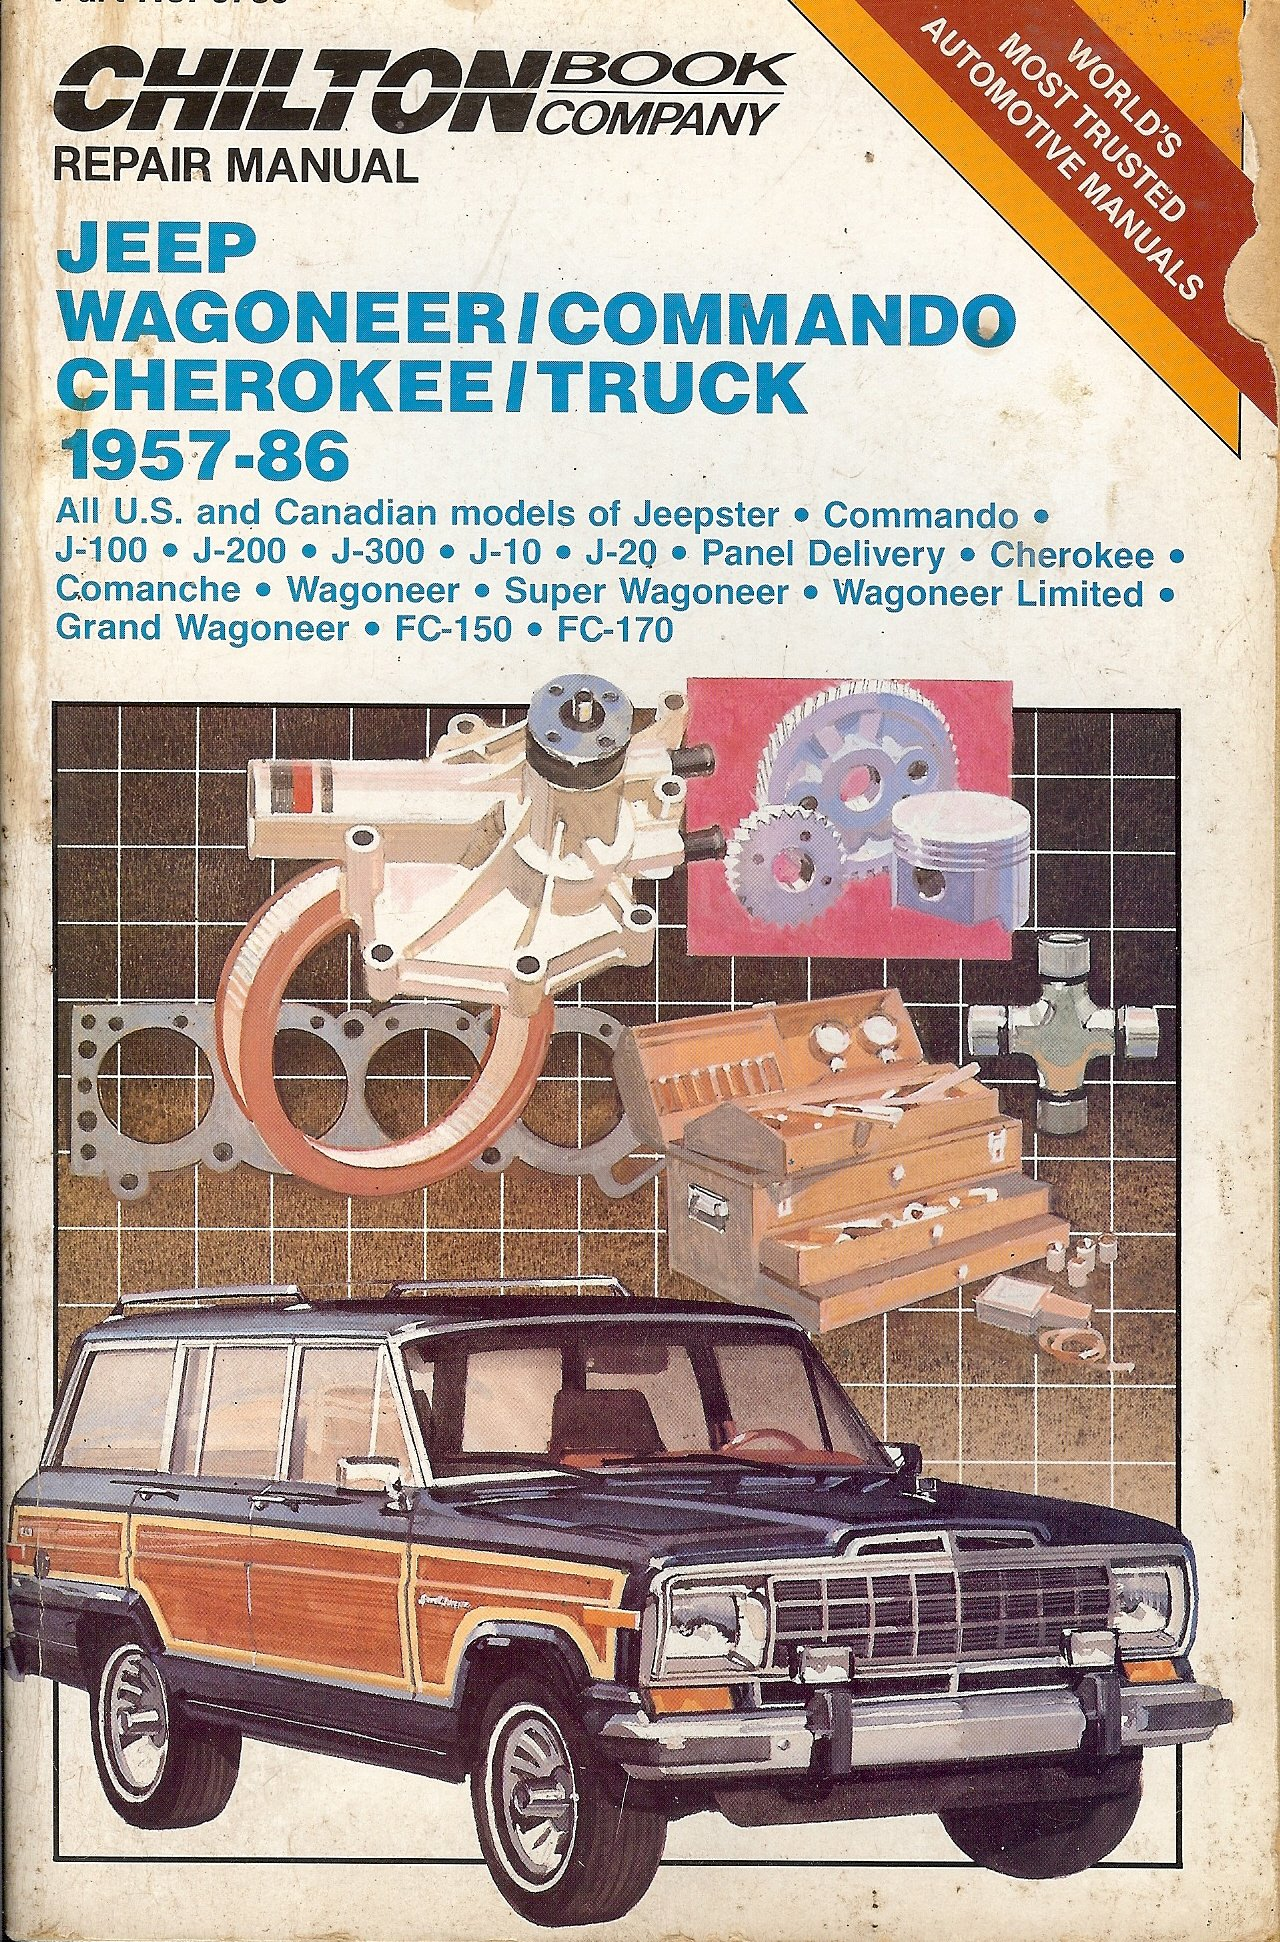 Chilton's Repair Manual Jeep Wagoneer/Commando Cherokee/Truck 1957-86:  Chilton Automotive Books: 9780801977206: Amazon.com: Books